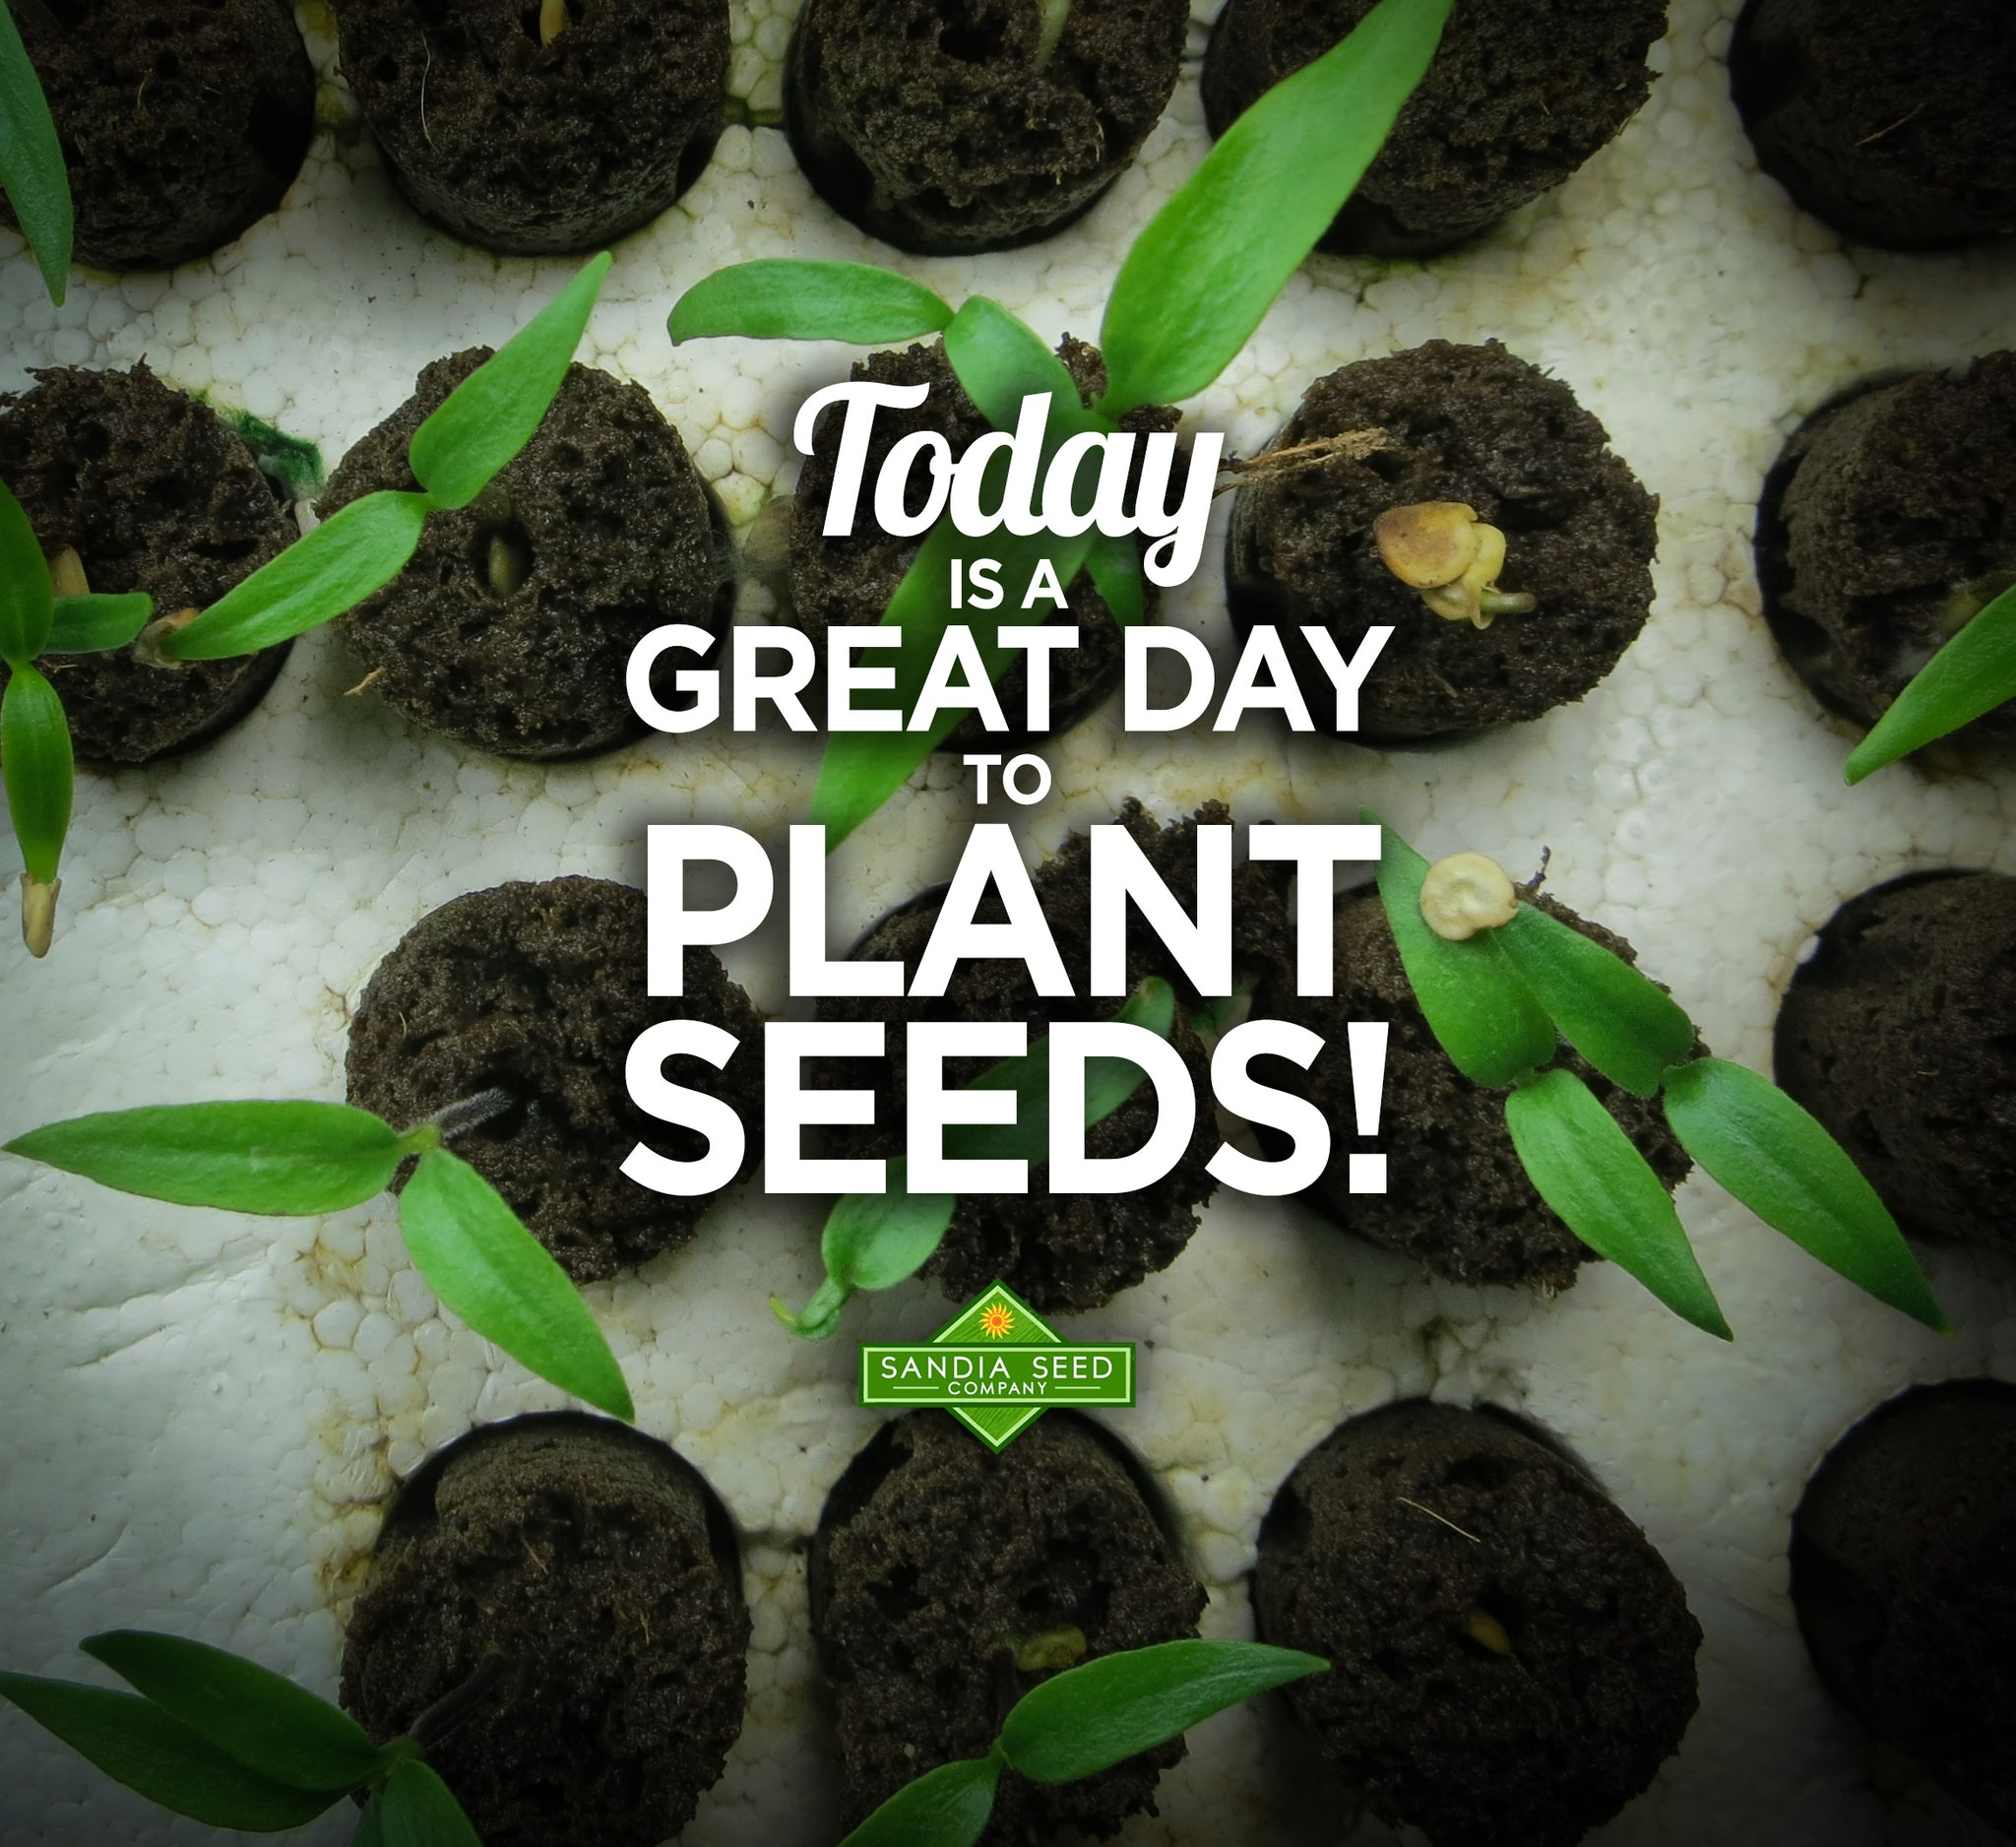 Today is a great day to plant seeds!